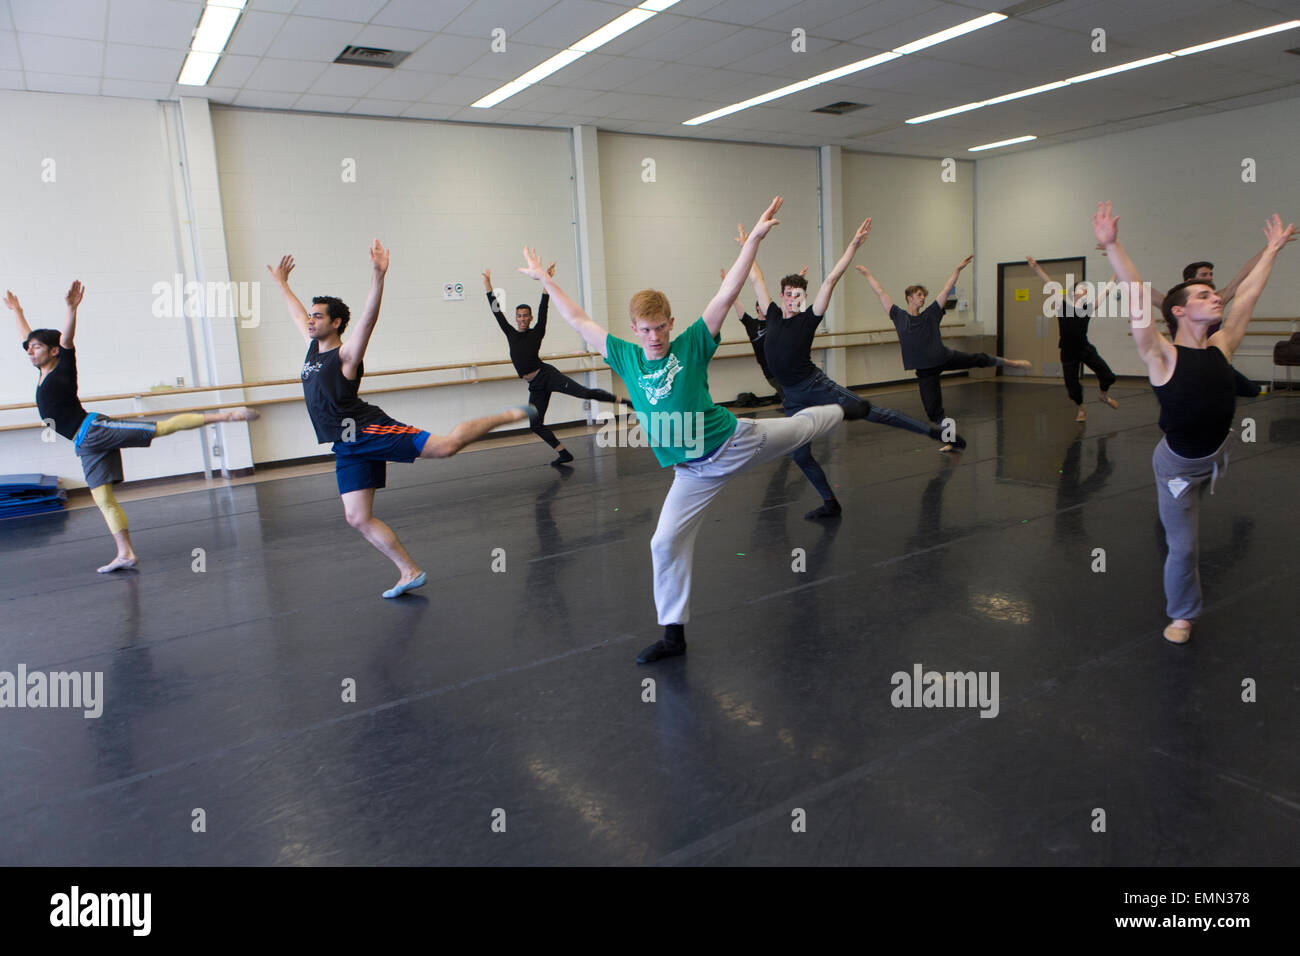 ballet dancers are training in Banff cultural center, Canada Stock Photo